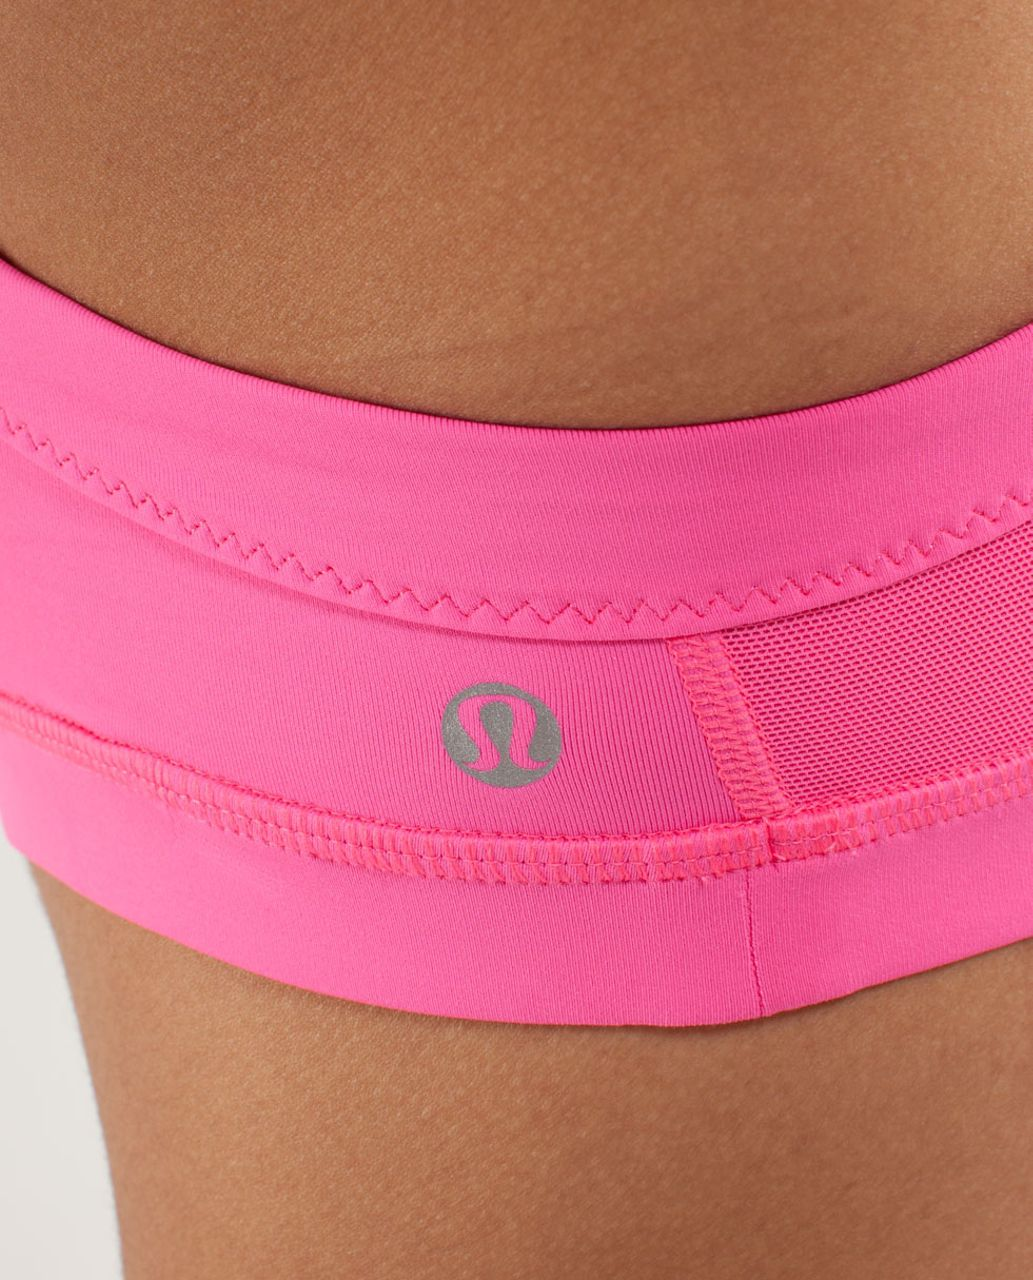 Lululemon Run:  Sprint Bra - Pinkelicious